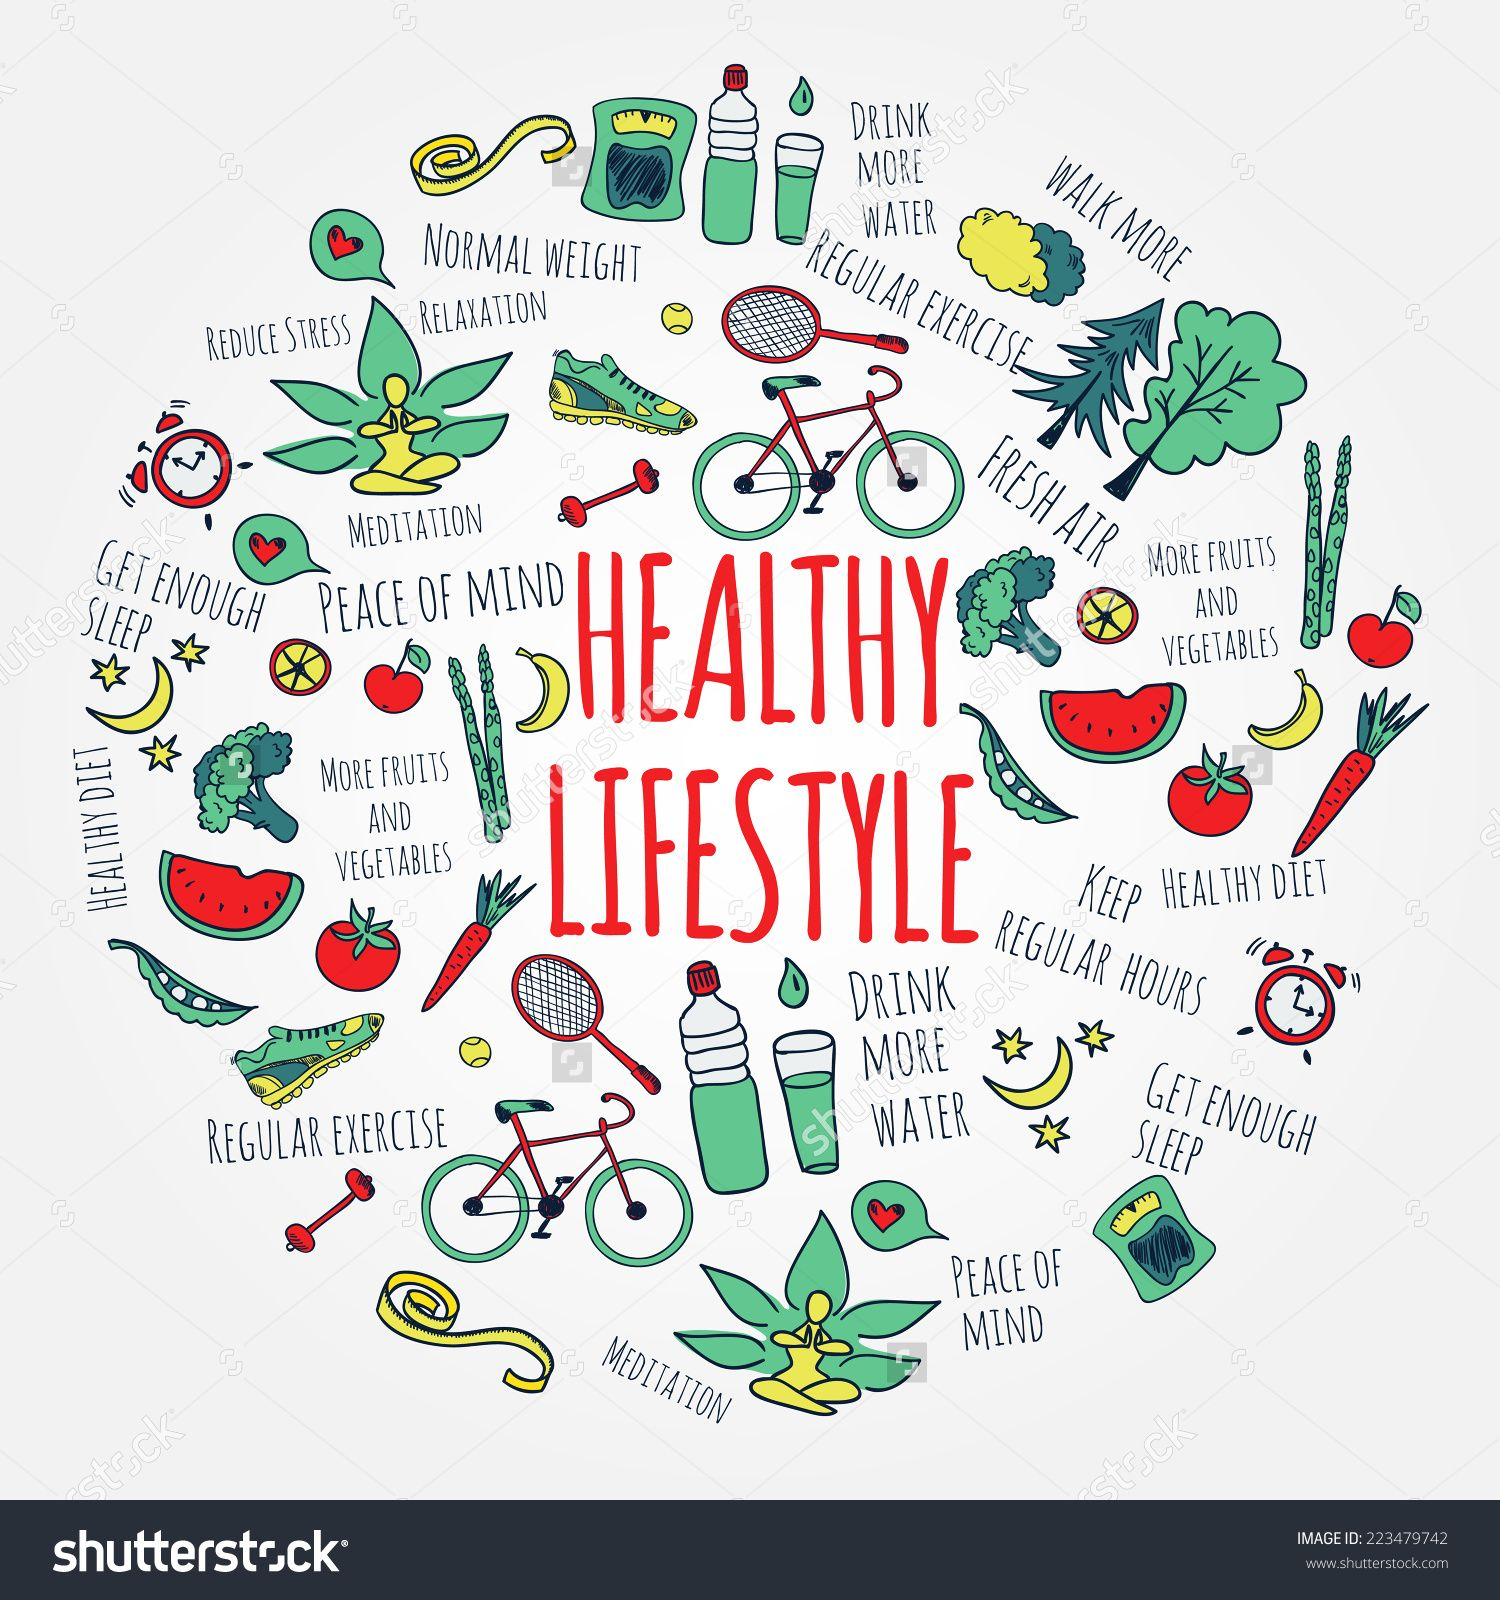 Healthy lifestyle clipart banner black and white download Healthy lifestyle clipart 7 » Clipart Station banner black and white download